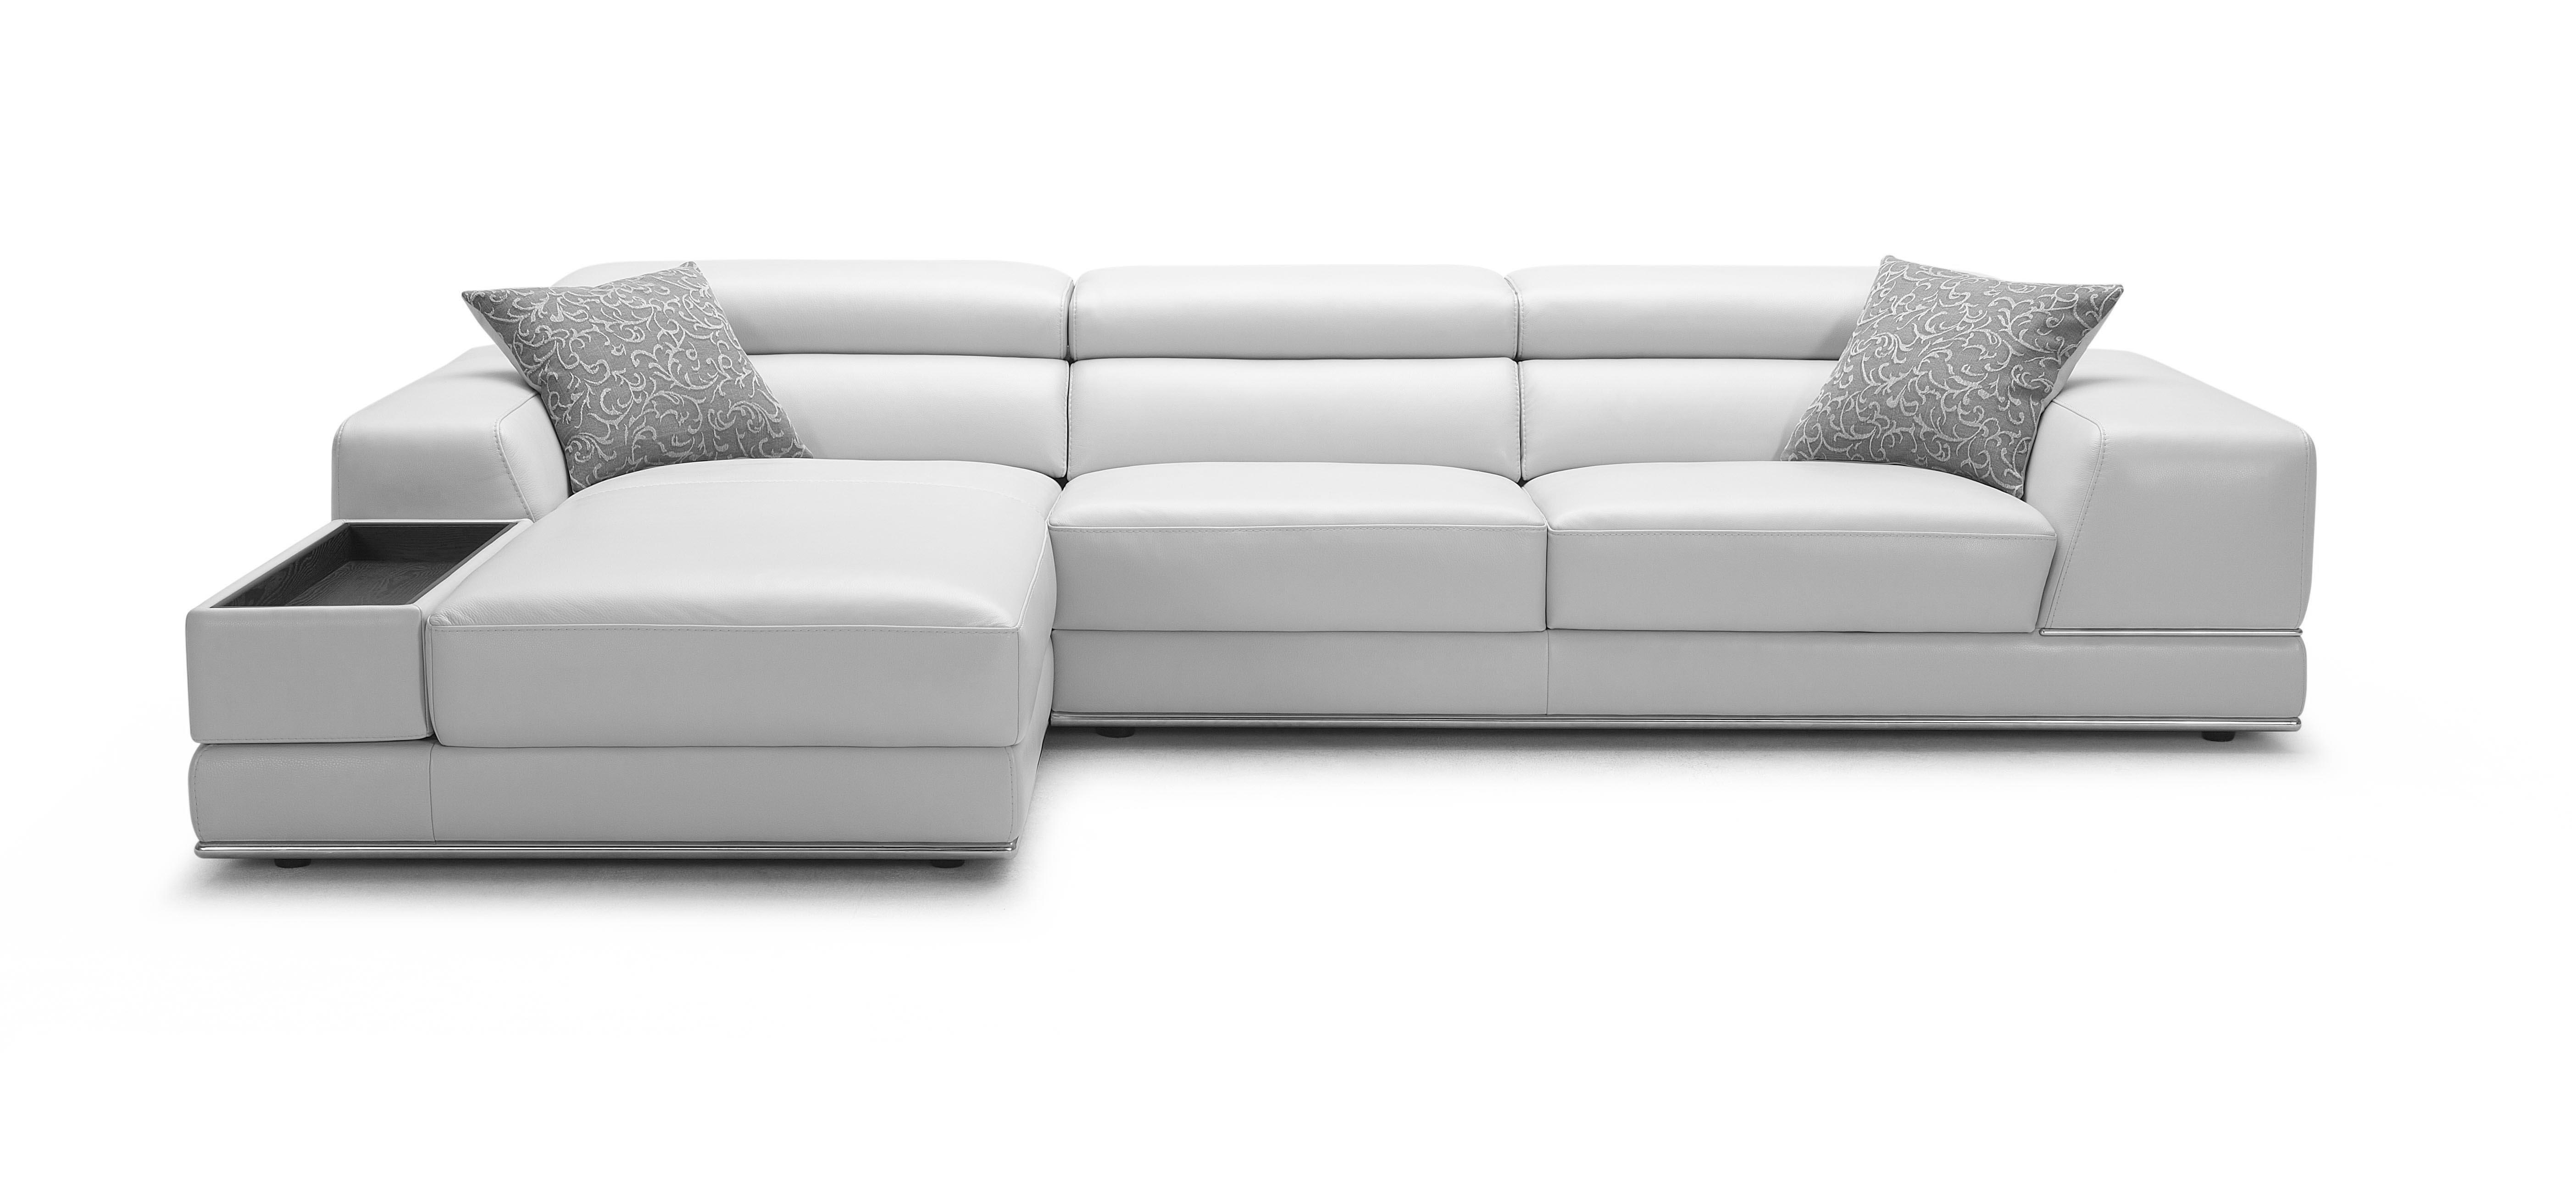 Greensboro Nc Sectional Sofas For Well Liked Furniture : Sectional Sofa Greensboro Nc Sectional Sofa Chaise (Gallery 19 of 20)